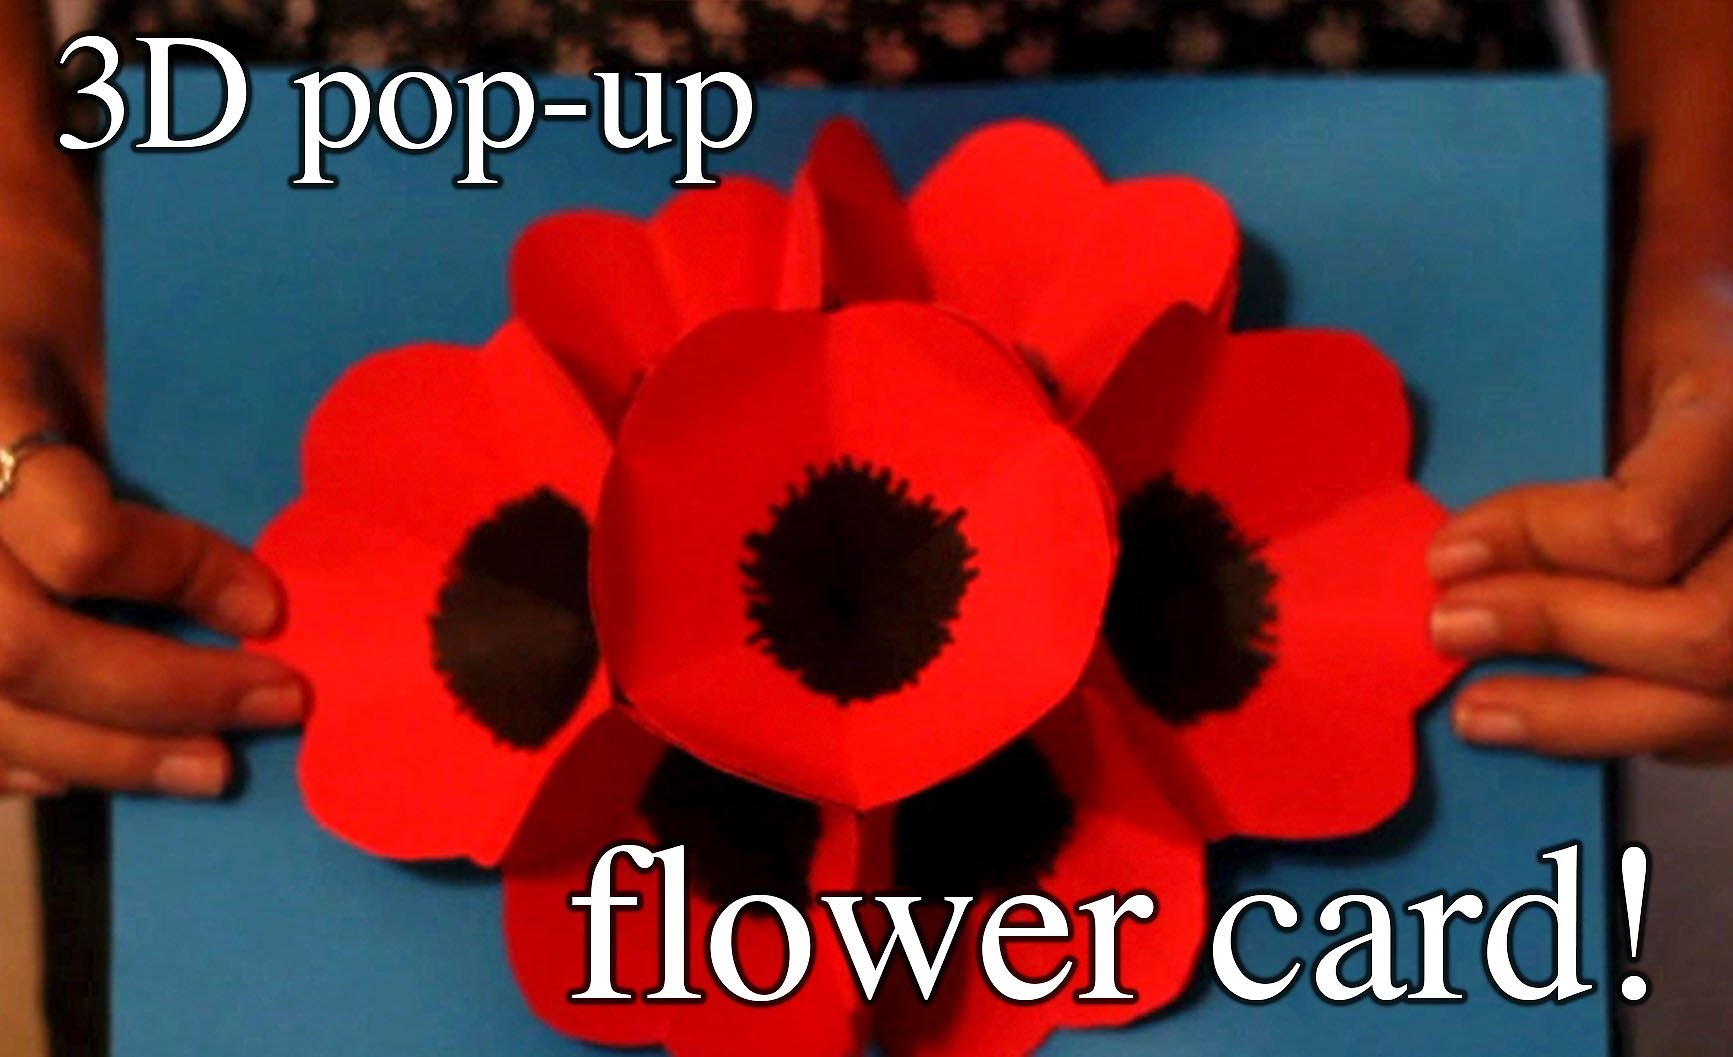 How to make a 3D pop-up flower card for a special someone